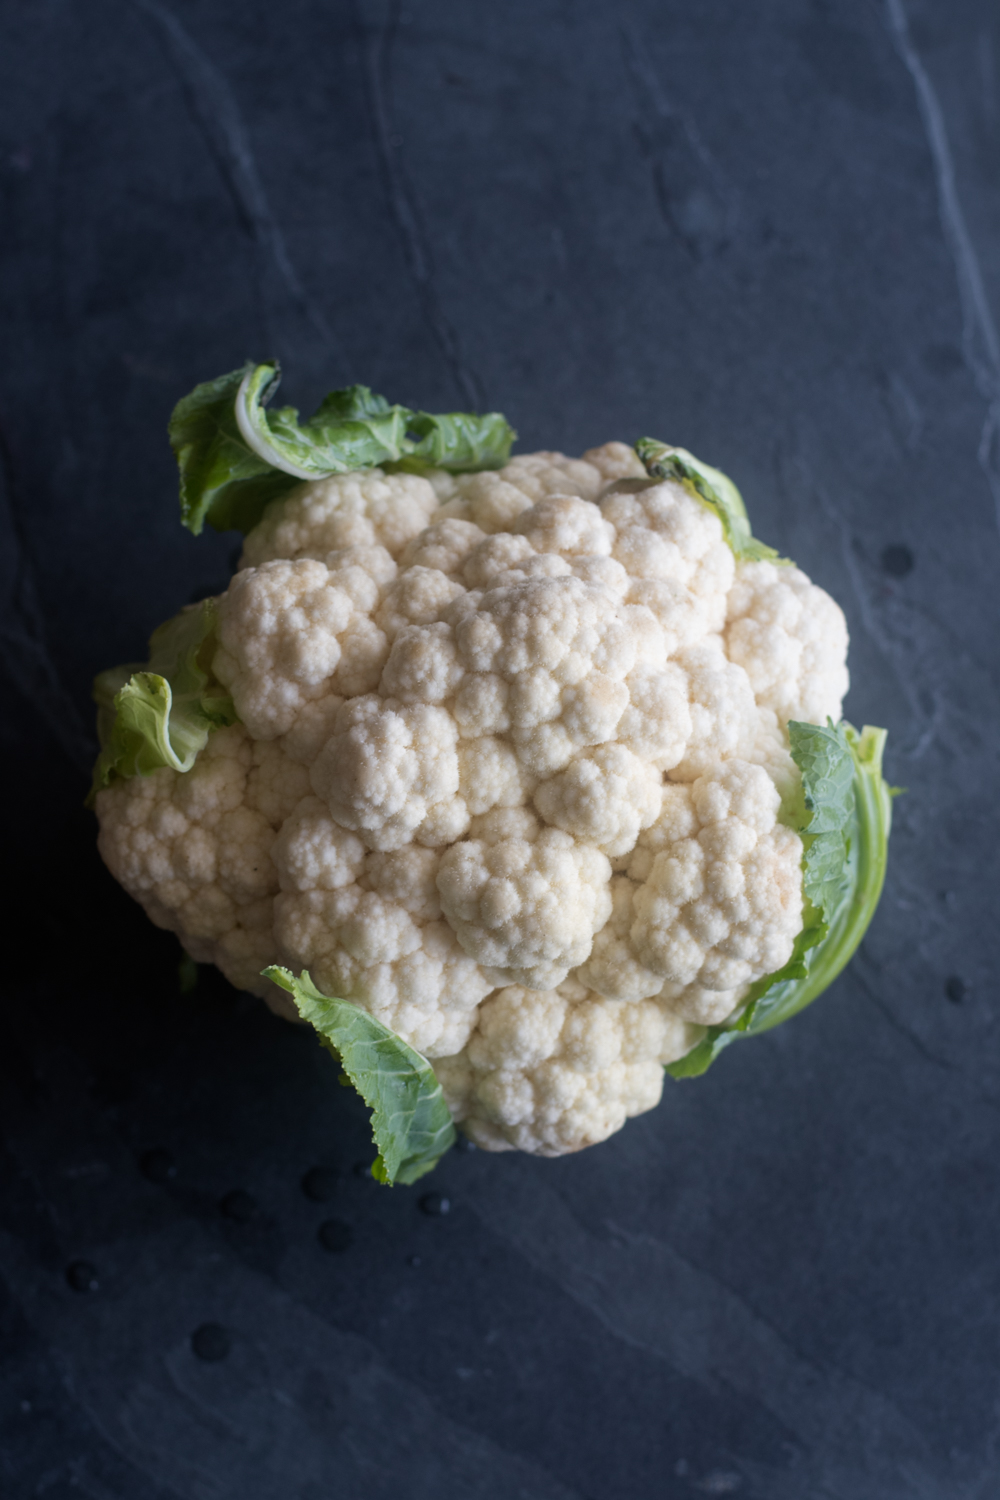 Cauliflower makes a great rice substitute for traditional rice dishes.